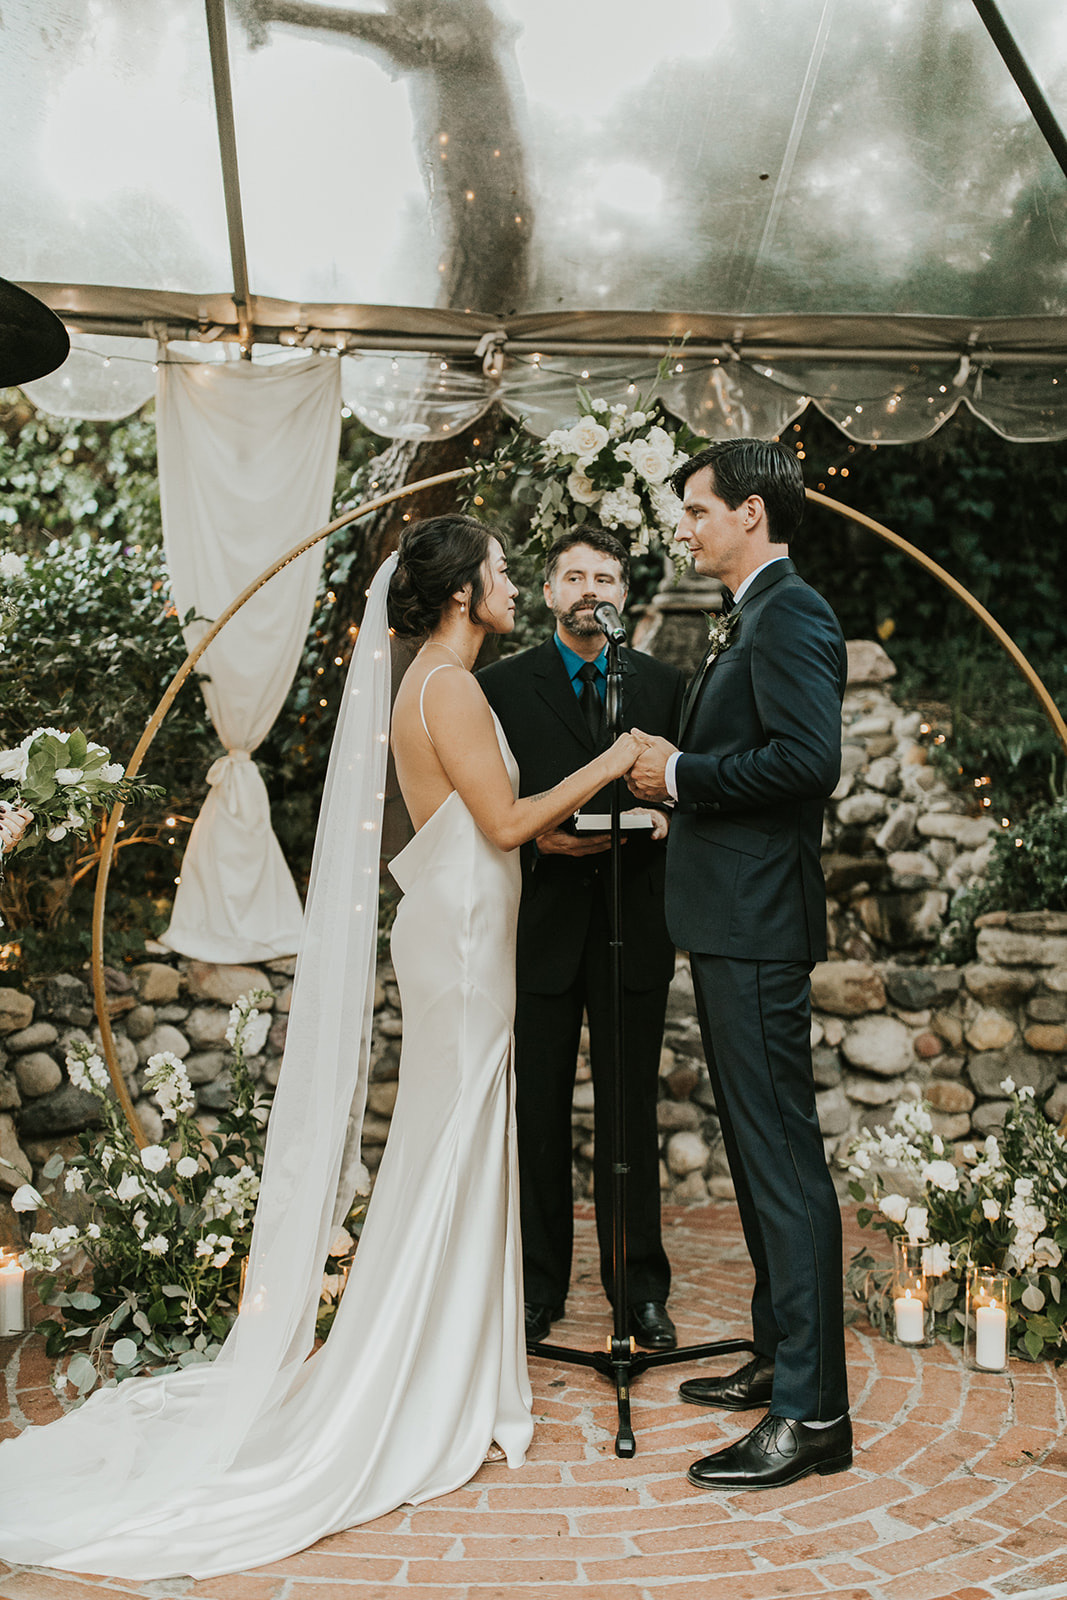 wedding ceremony at Inn of the Seventh Ray